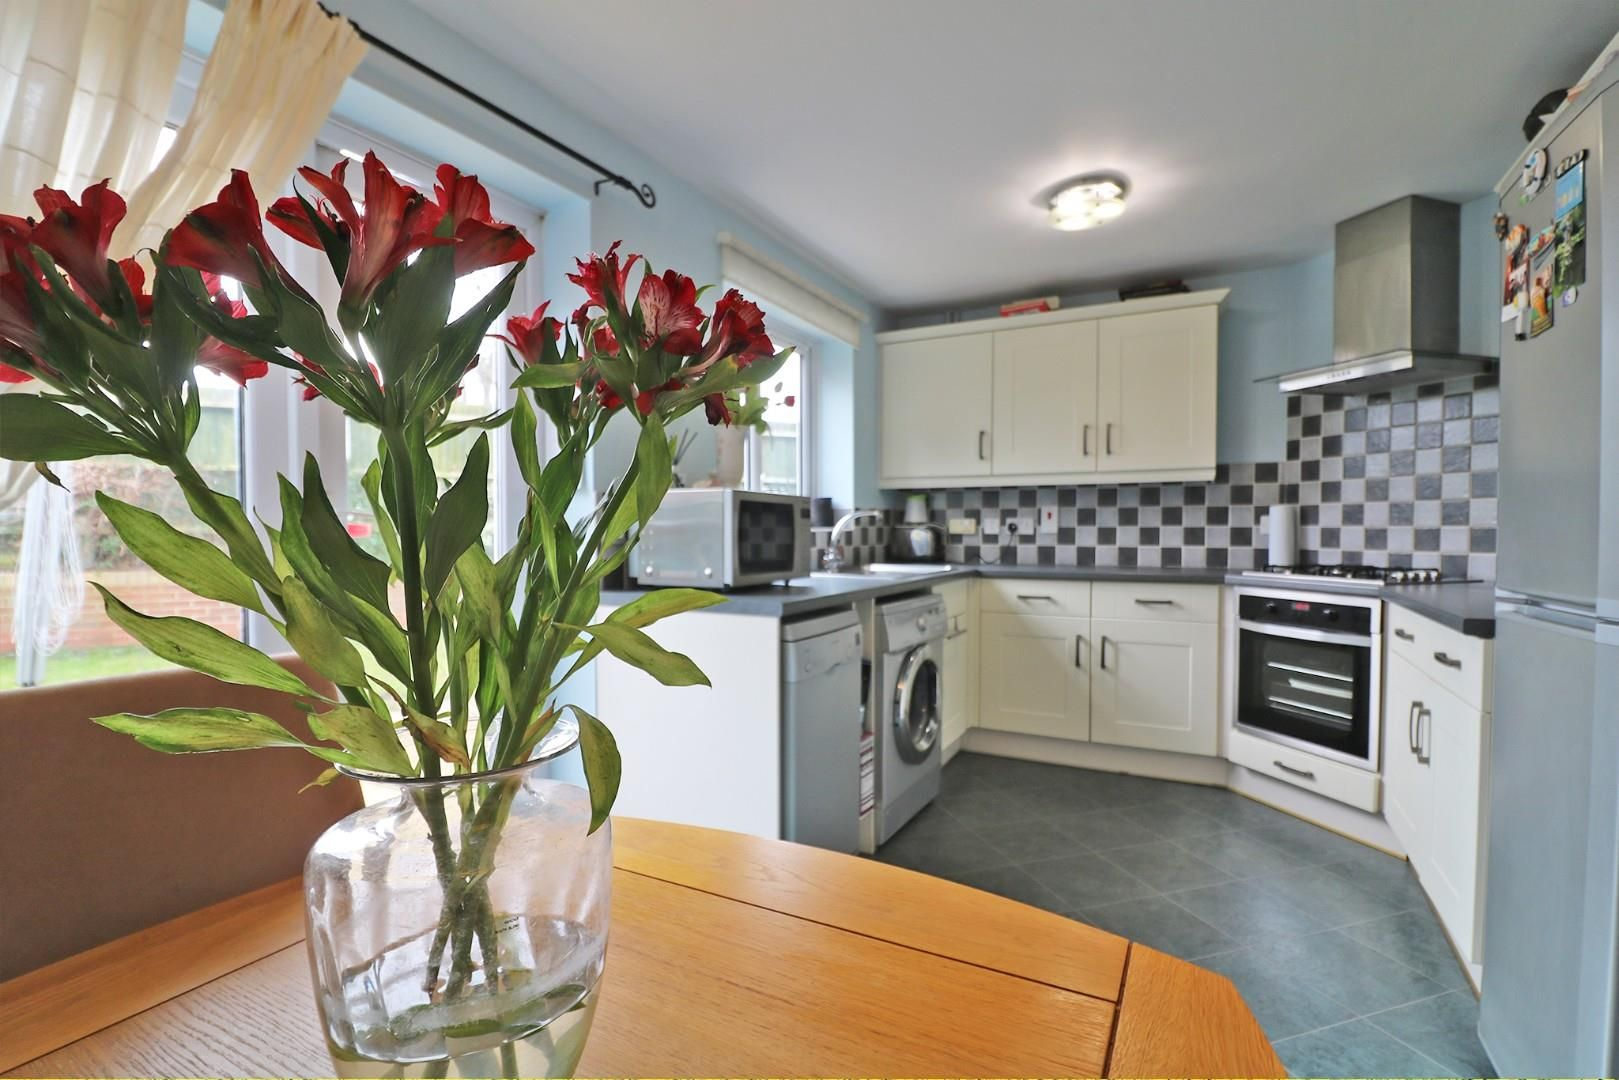 3 bed house for sale in Woodley 5